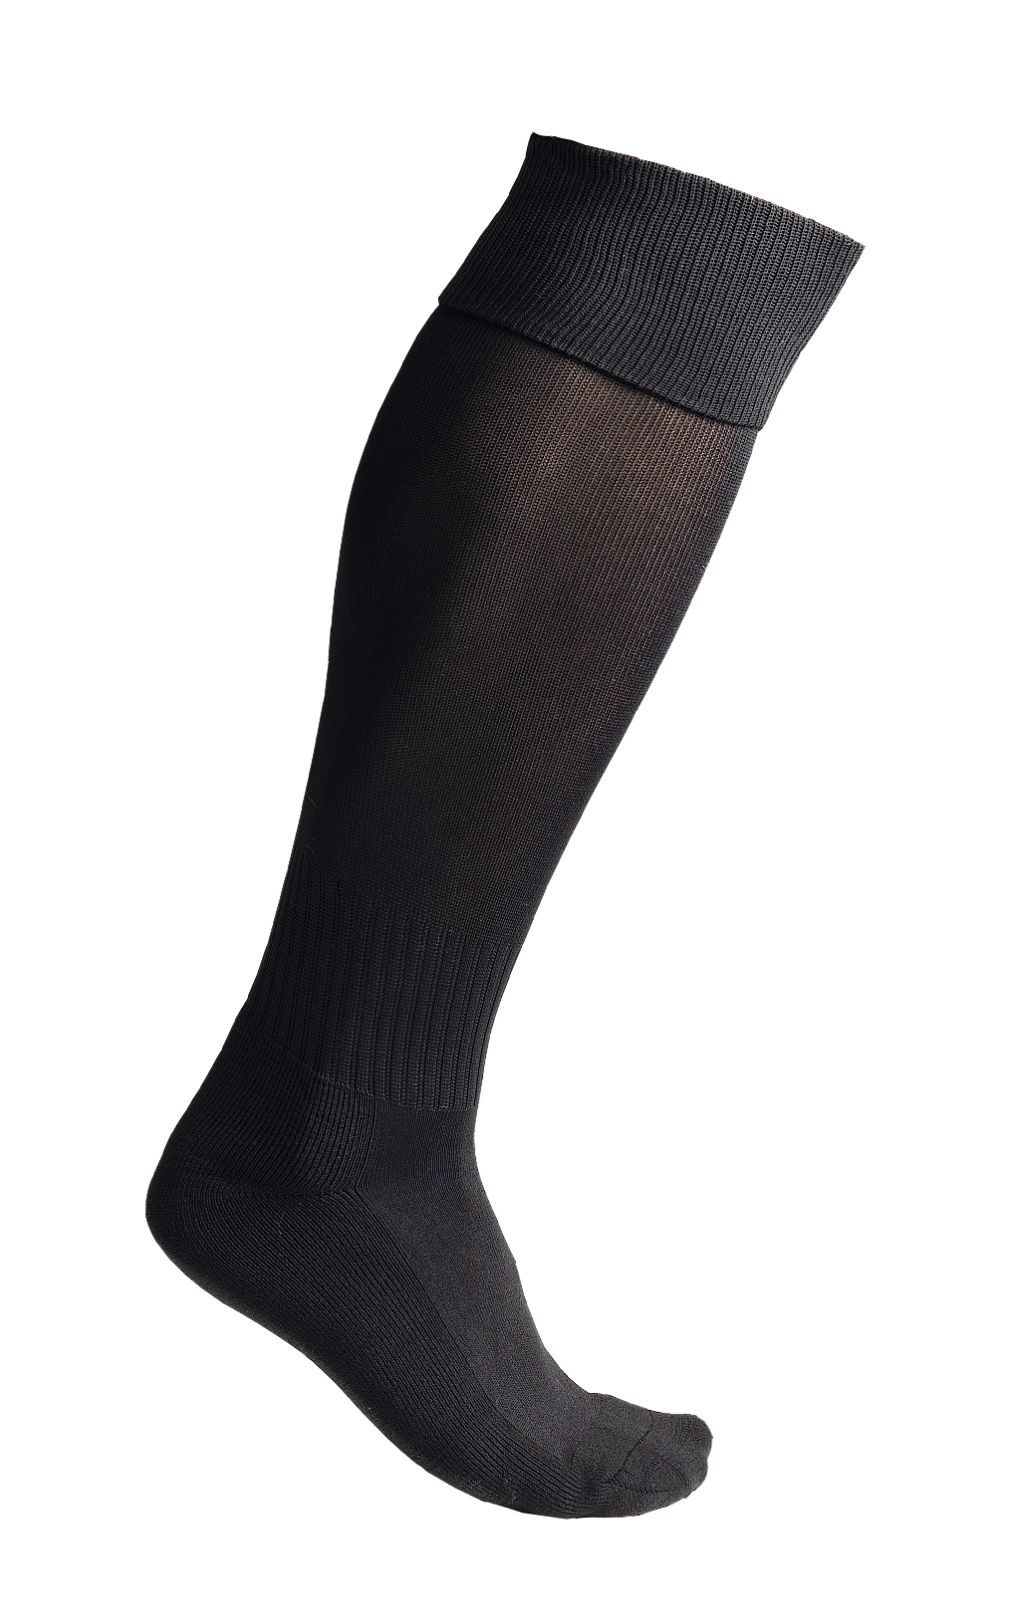 Umbro Liiga football sock